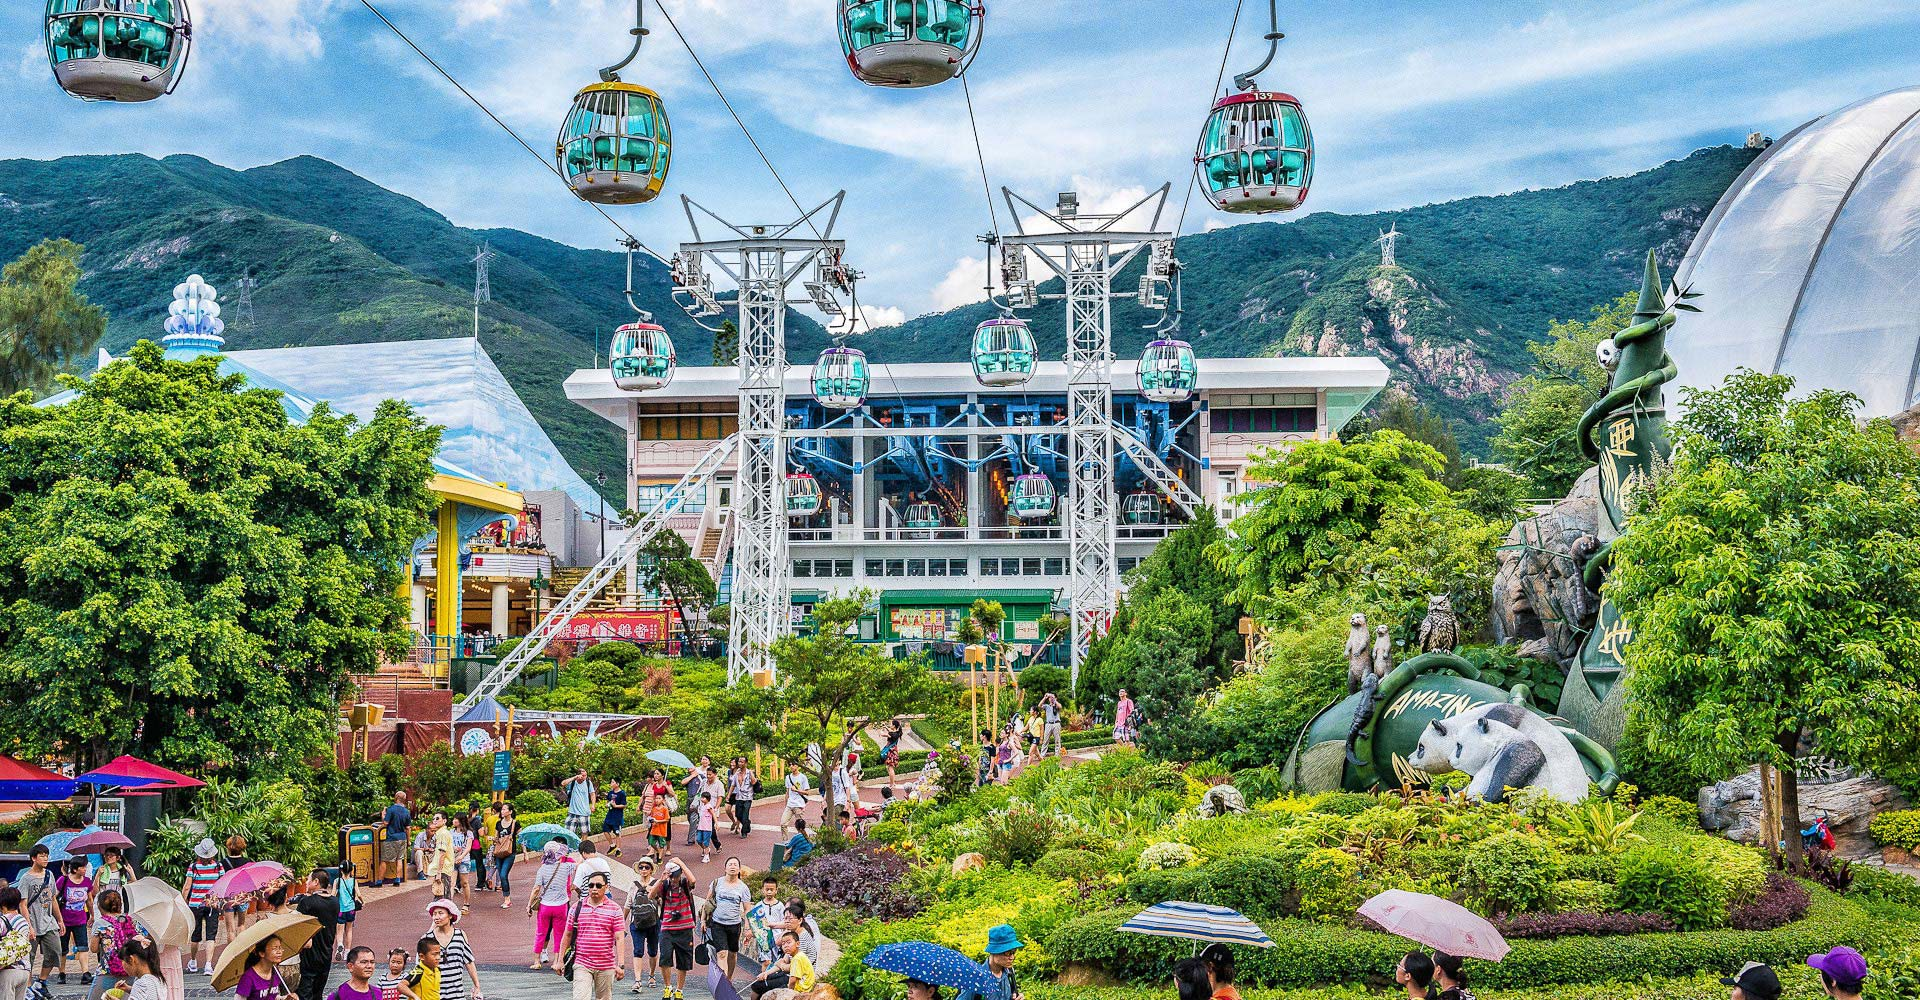 https://media.oceanpark.com.hk/files/s3fs-public/CableCarStation.jpg